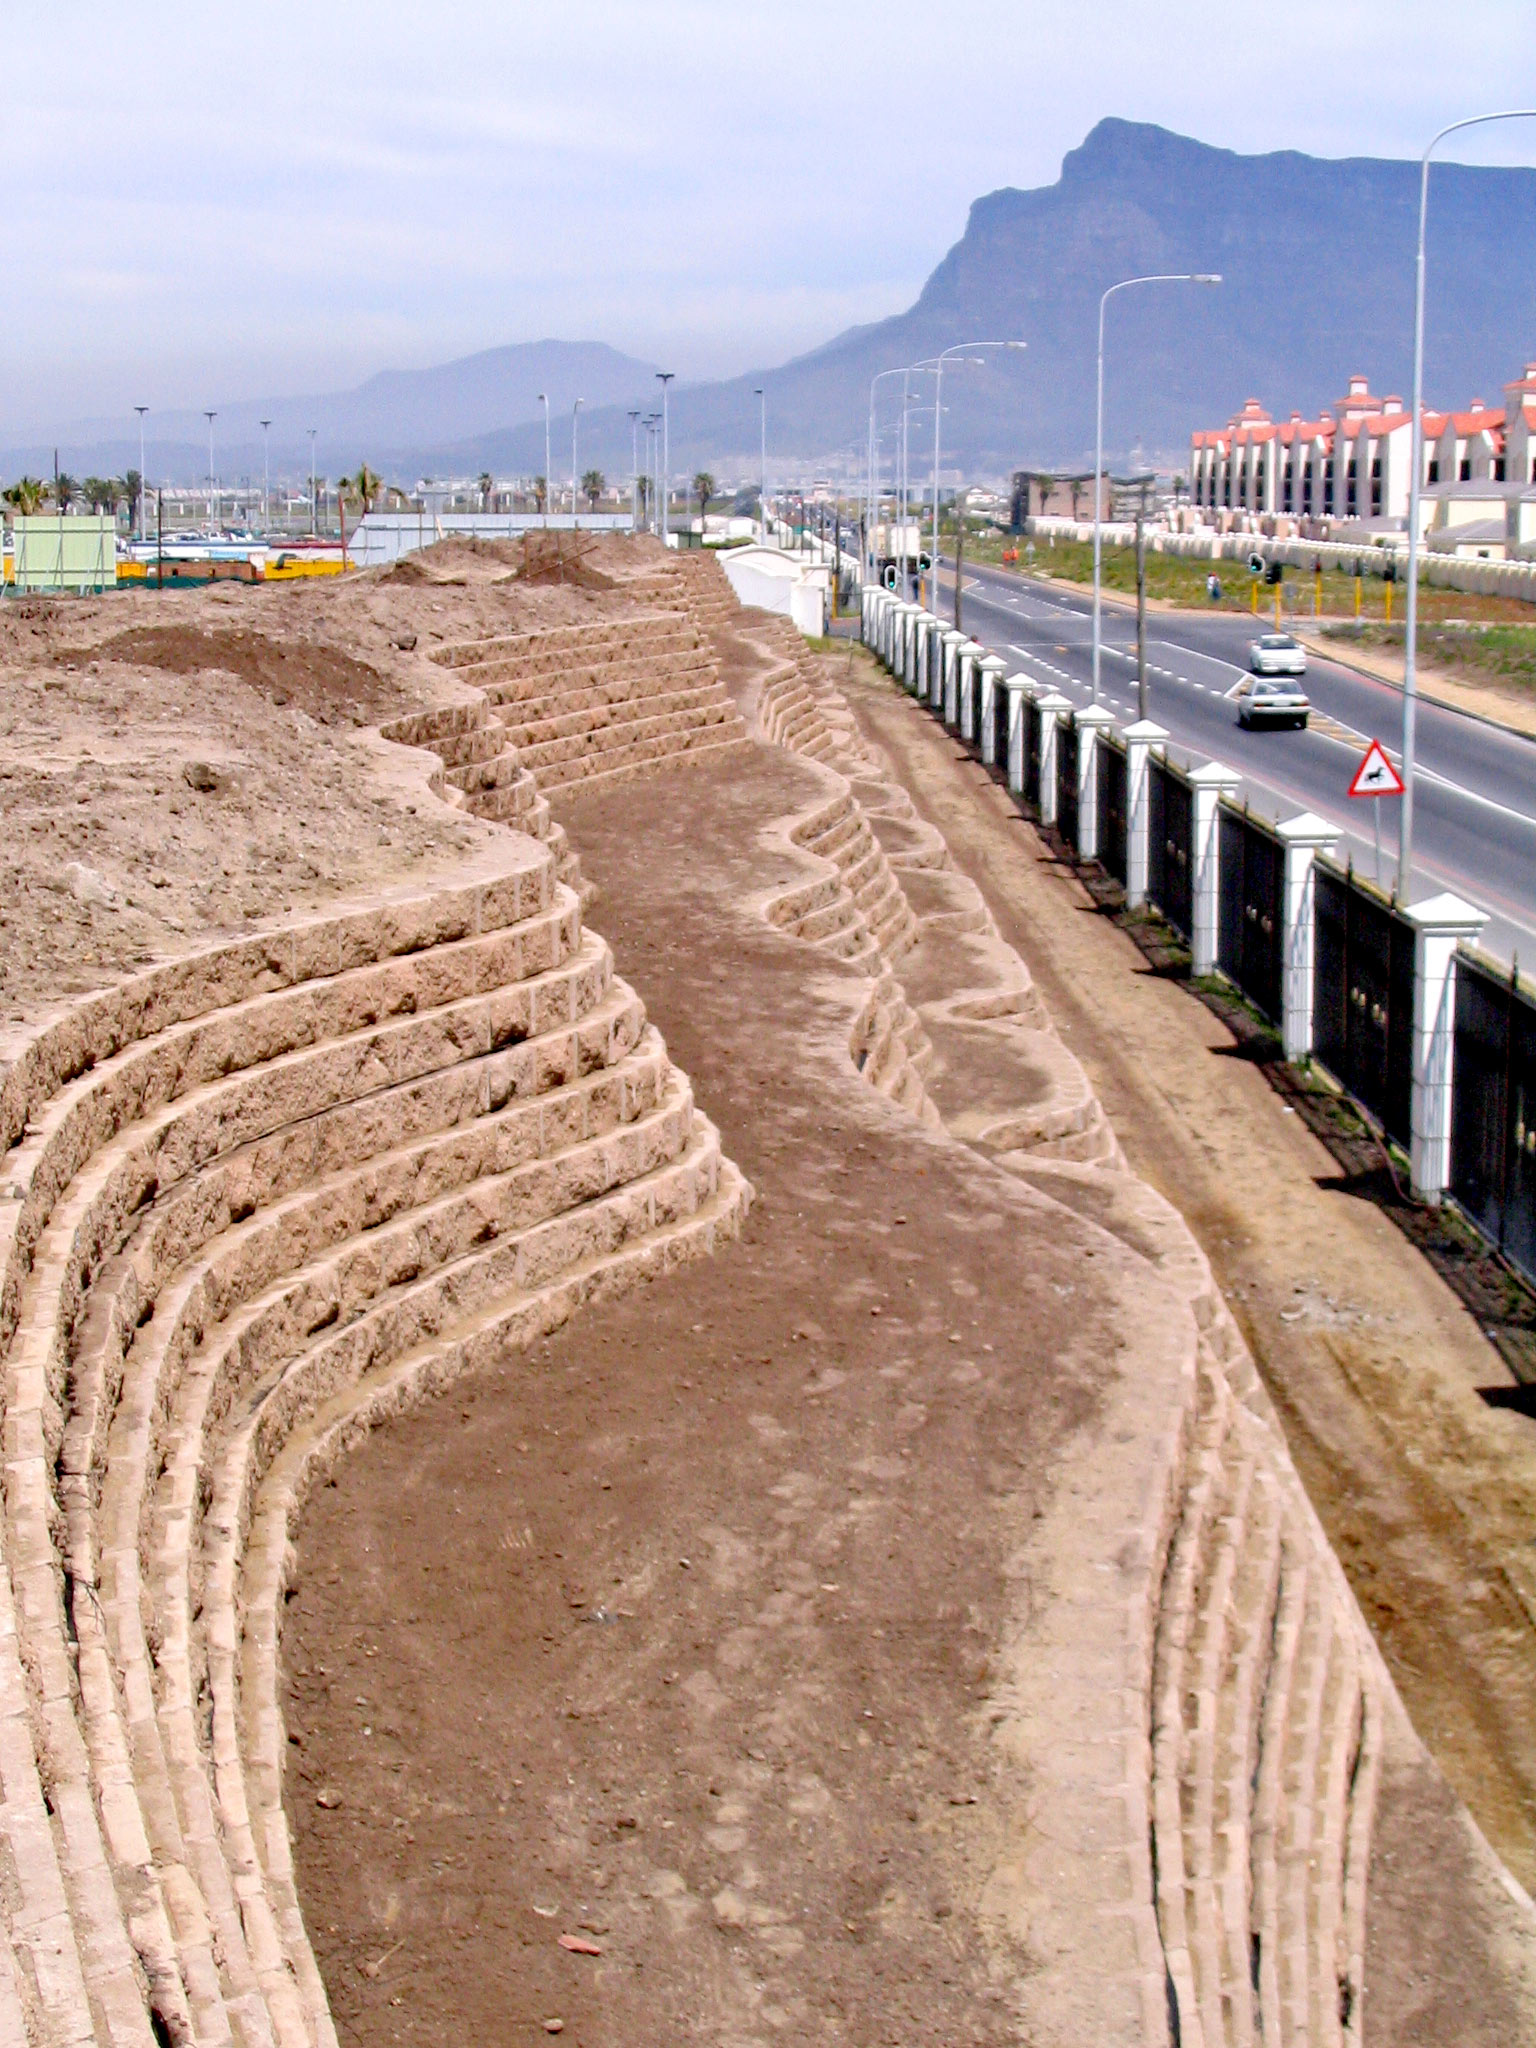 In order to protect future residents from excessive traffic noise from a planned double carriage highway and any possible negative visual impact associated with this, a 4.5 metre high and 500m long earth berm was created with the surplus site material.